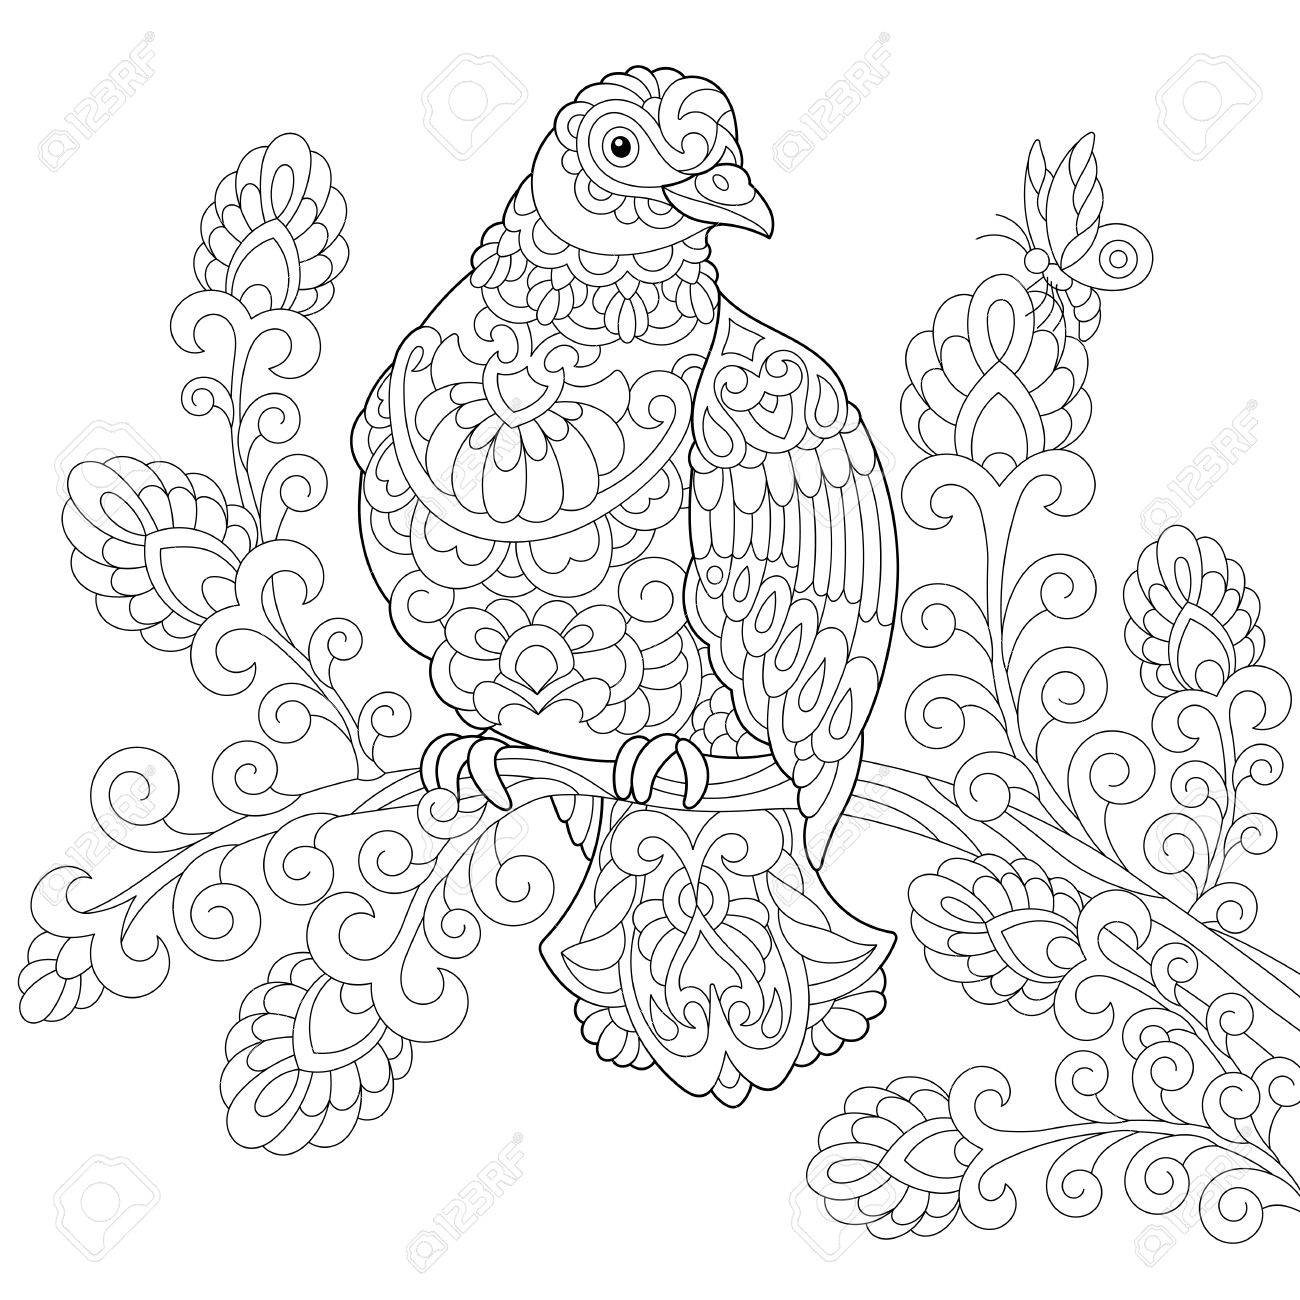 coloring page of dove pigeon bird freehand sketch drawing